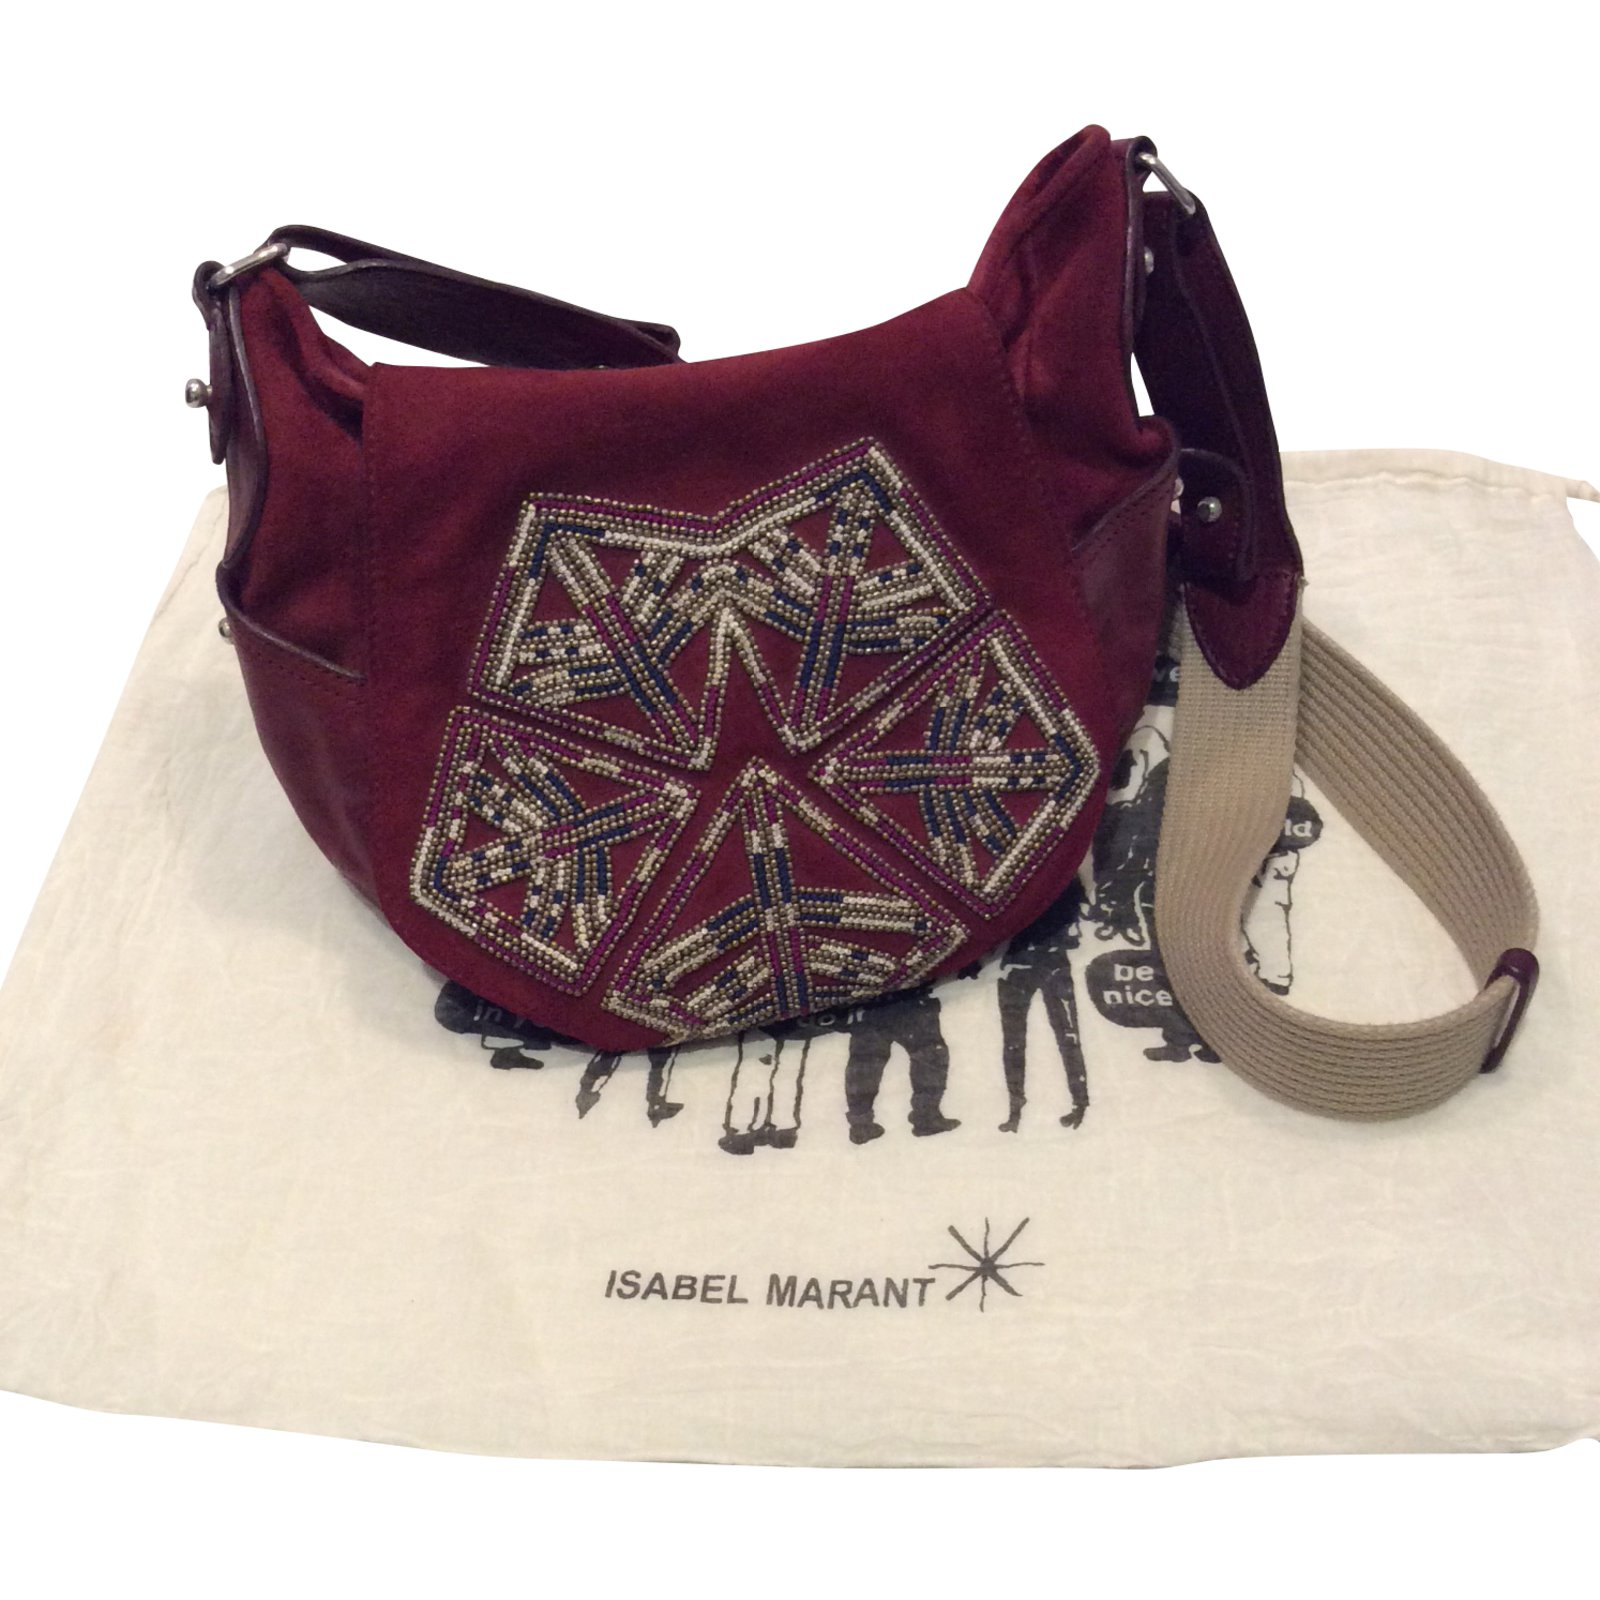 Isabel Marant Handbags Deerskin Dark Red Ref 56861